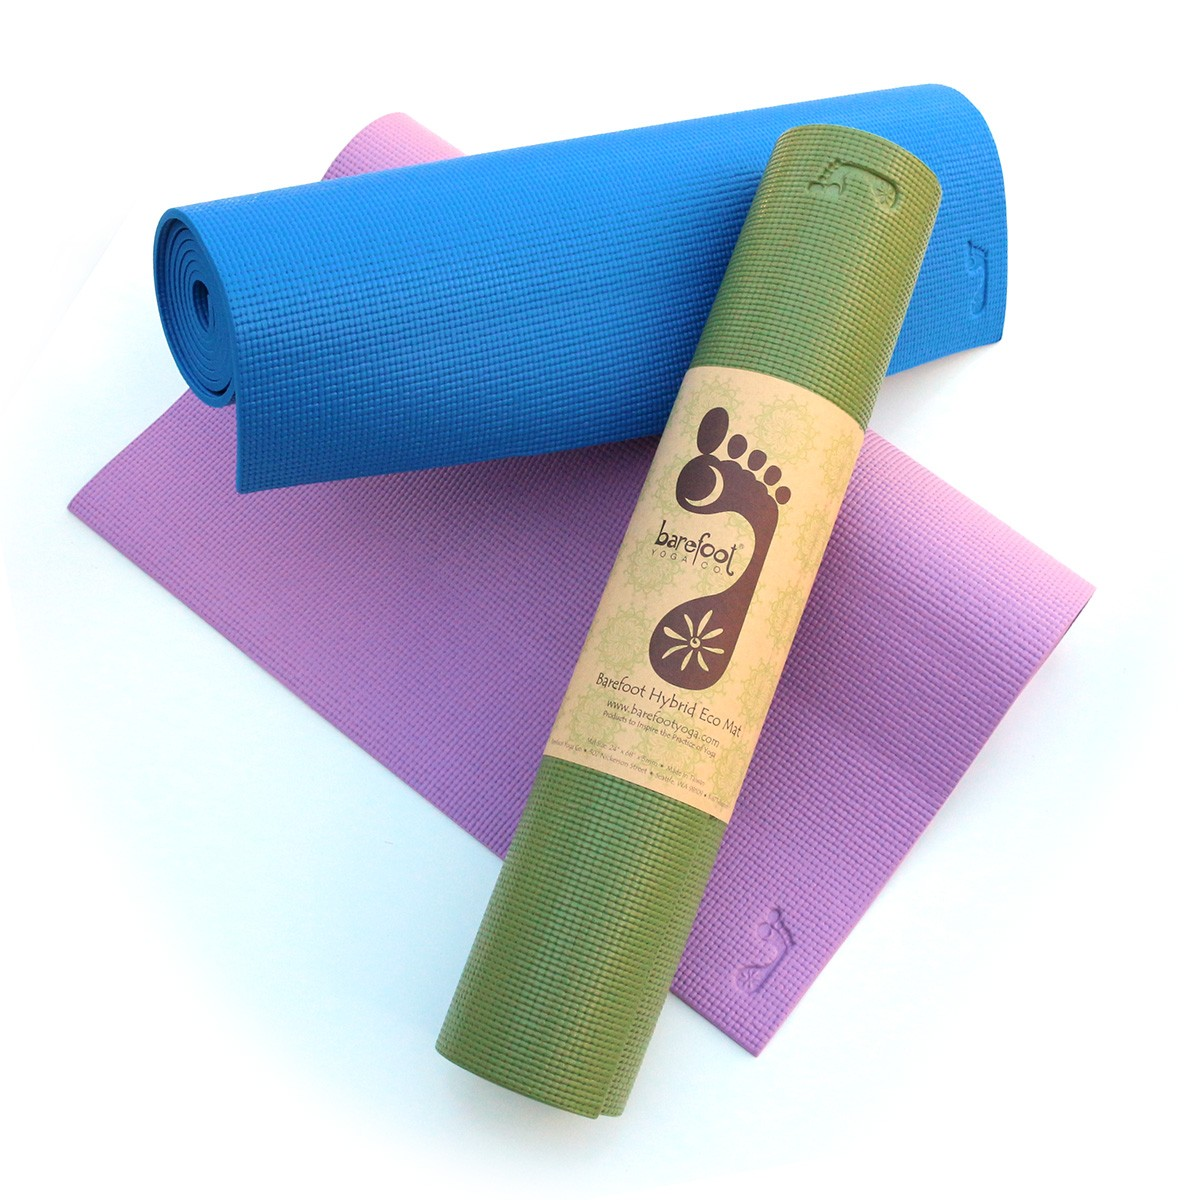 Hybrid Eco Mats by Barefoot Yoga